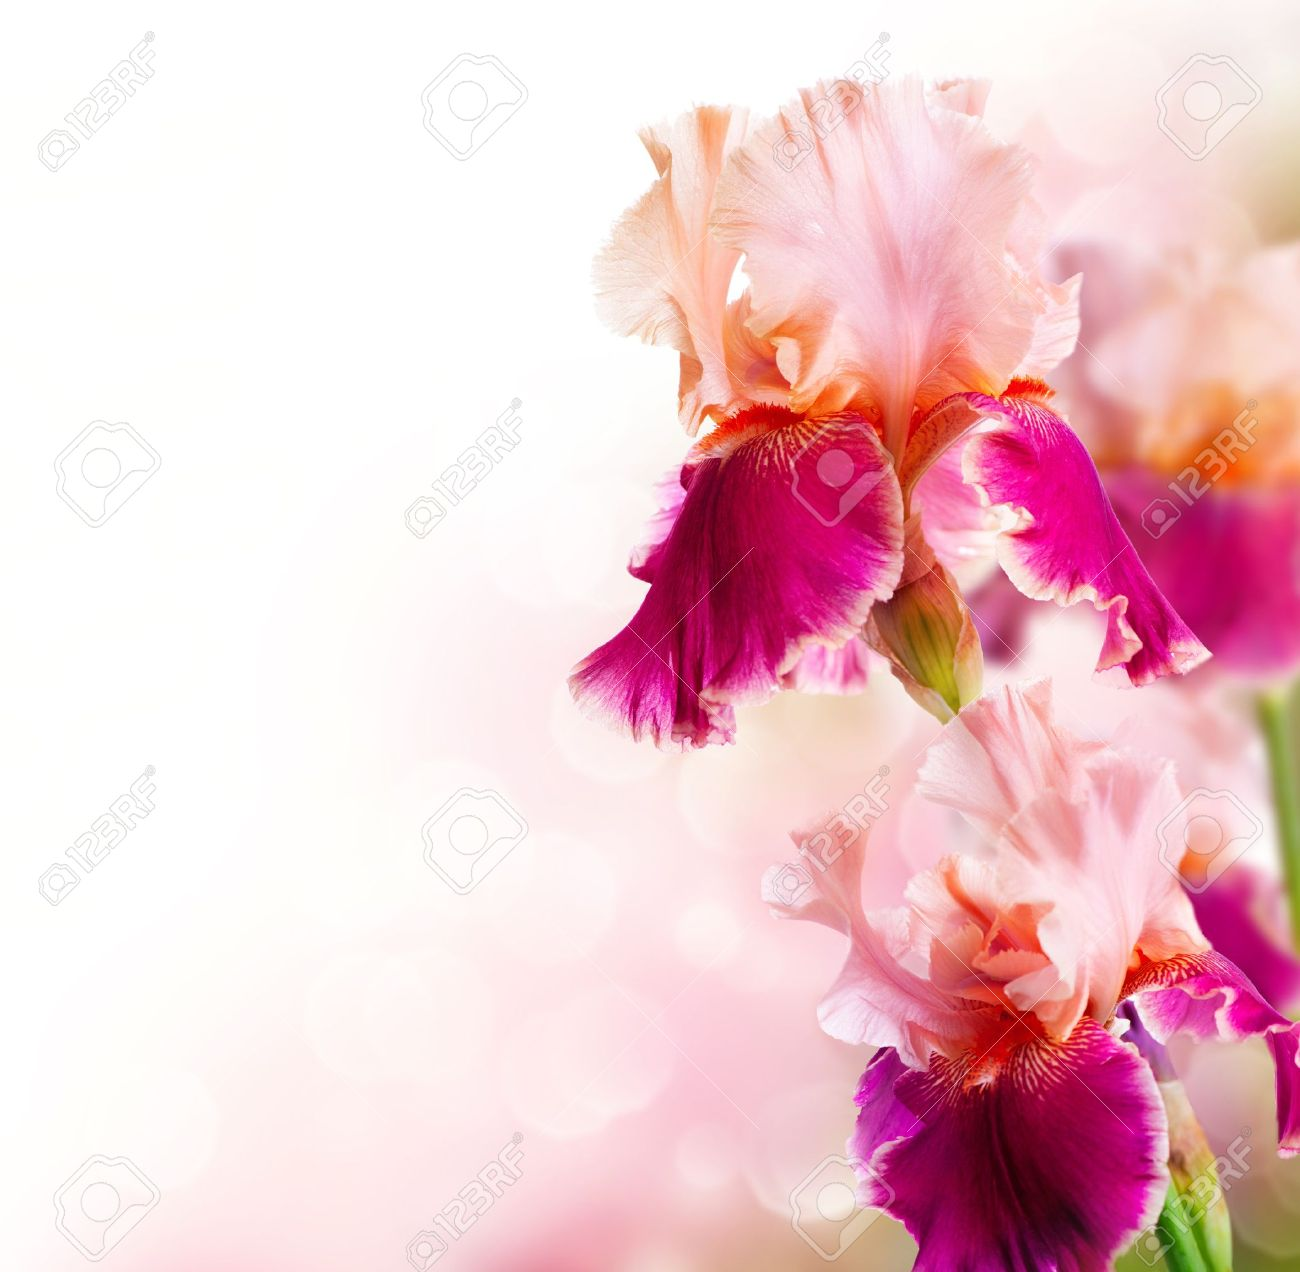 Beautiful Pictures Of Flowers Iris Flowers Art Design Beautiful Flower